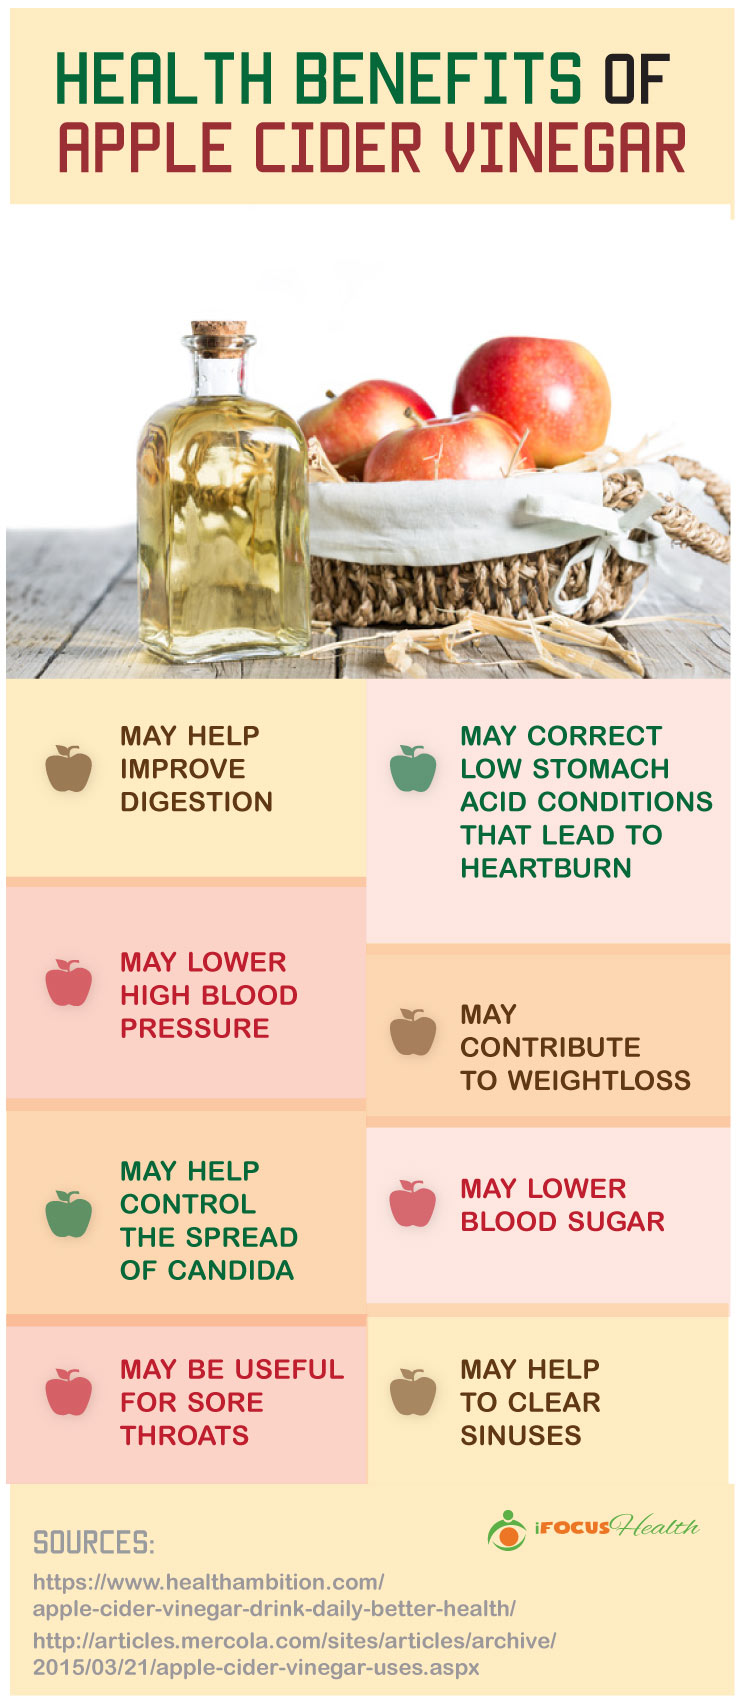 apple cider vinegar health benefits infographic